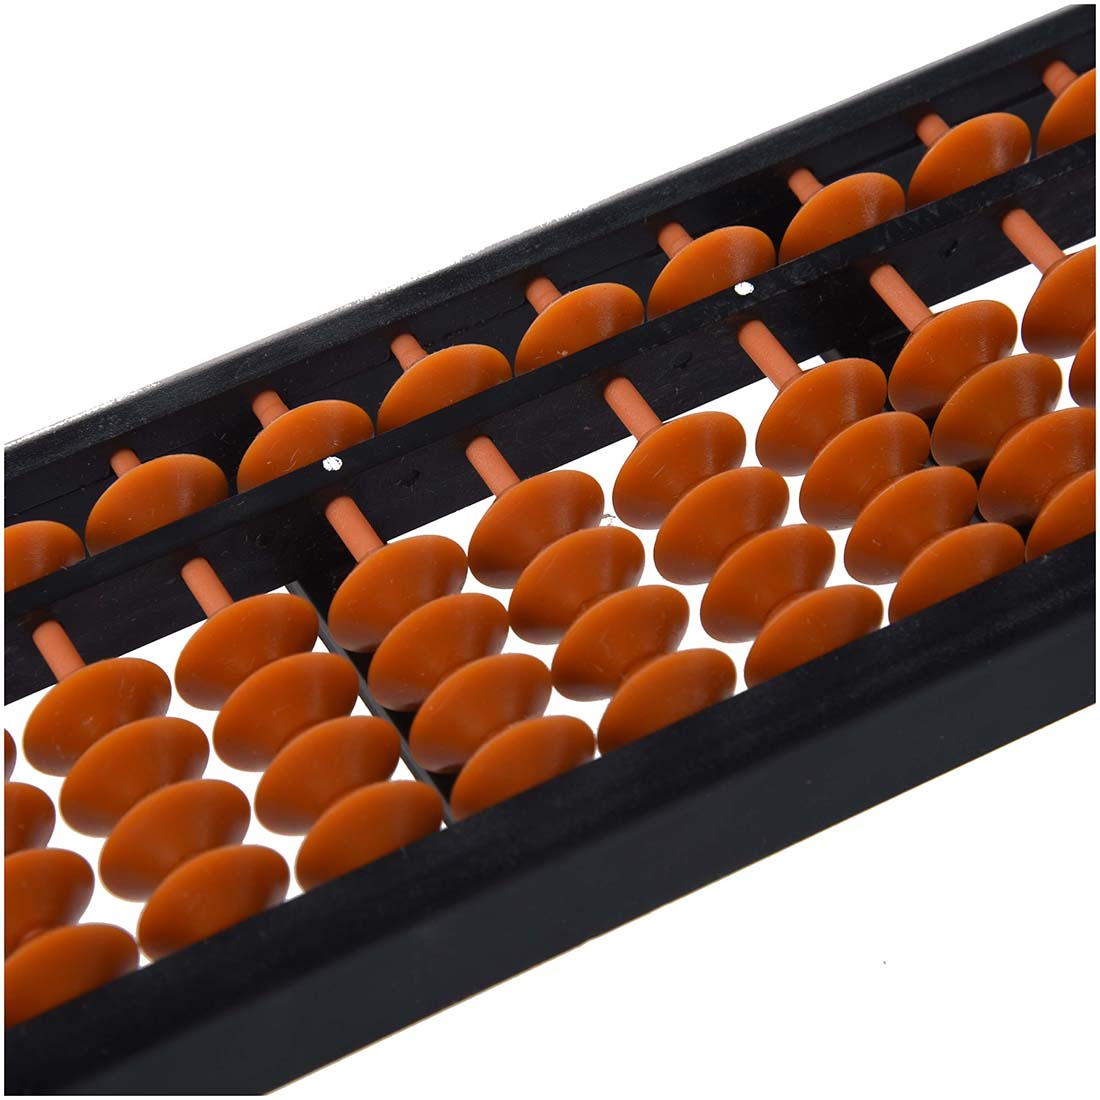 17 Digits 5 Beads ABS Abacus Soroban Beads Column Kid Learning Aids Tool Math Toy Business Abacus Educational Toys Gifts